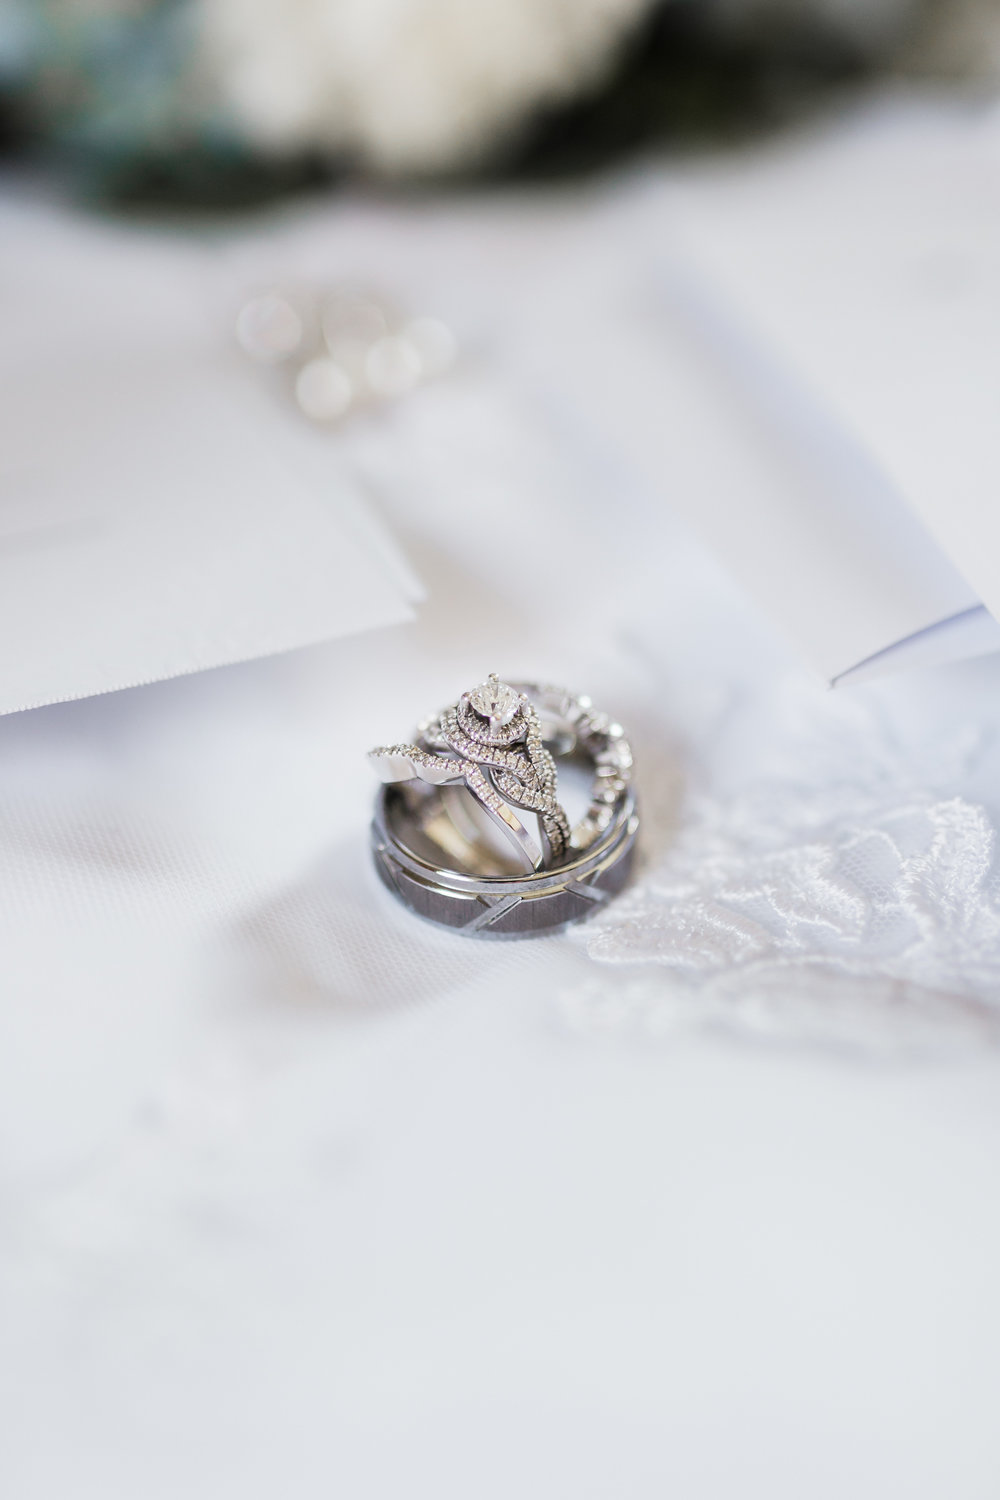 Bridal details of bride and  groom wedding rings